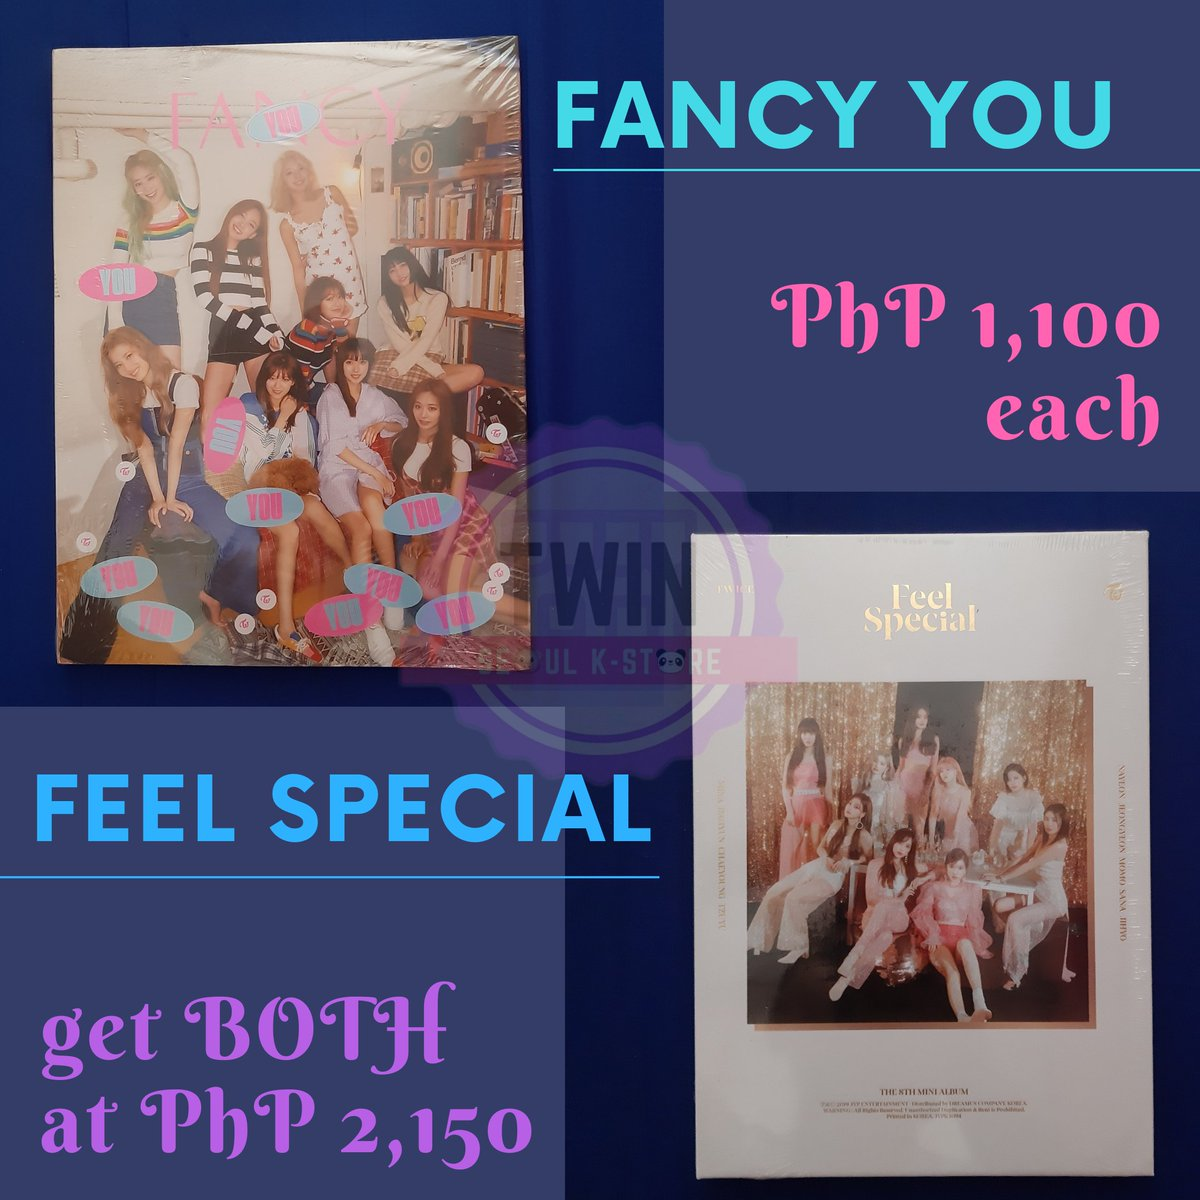 [TWICE ALBUMS]  ✅ Onhand ✅ Sealed ✅ Ready to ship ✅ Can be shipped through Shopee ✅ With store freebies  ✉ DM for inquiries 💓  #TwinSeoul #TSKSOnhand #Twice #Signal #FancyYou #FeelSpecial #Nayeon #Jeongyeon #Momo #Sana #Jihyo #Mina #Dahyun #Chaeyoung #Tzuyu https://t.co/E1tB5mrPj3